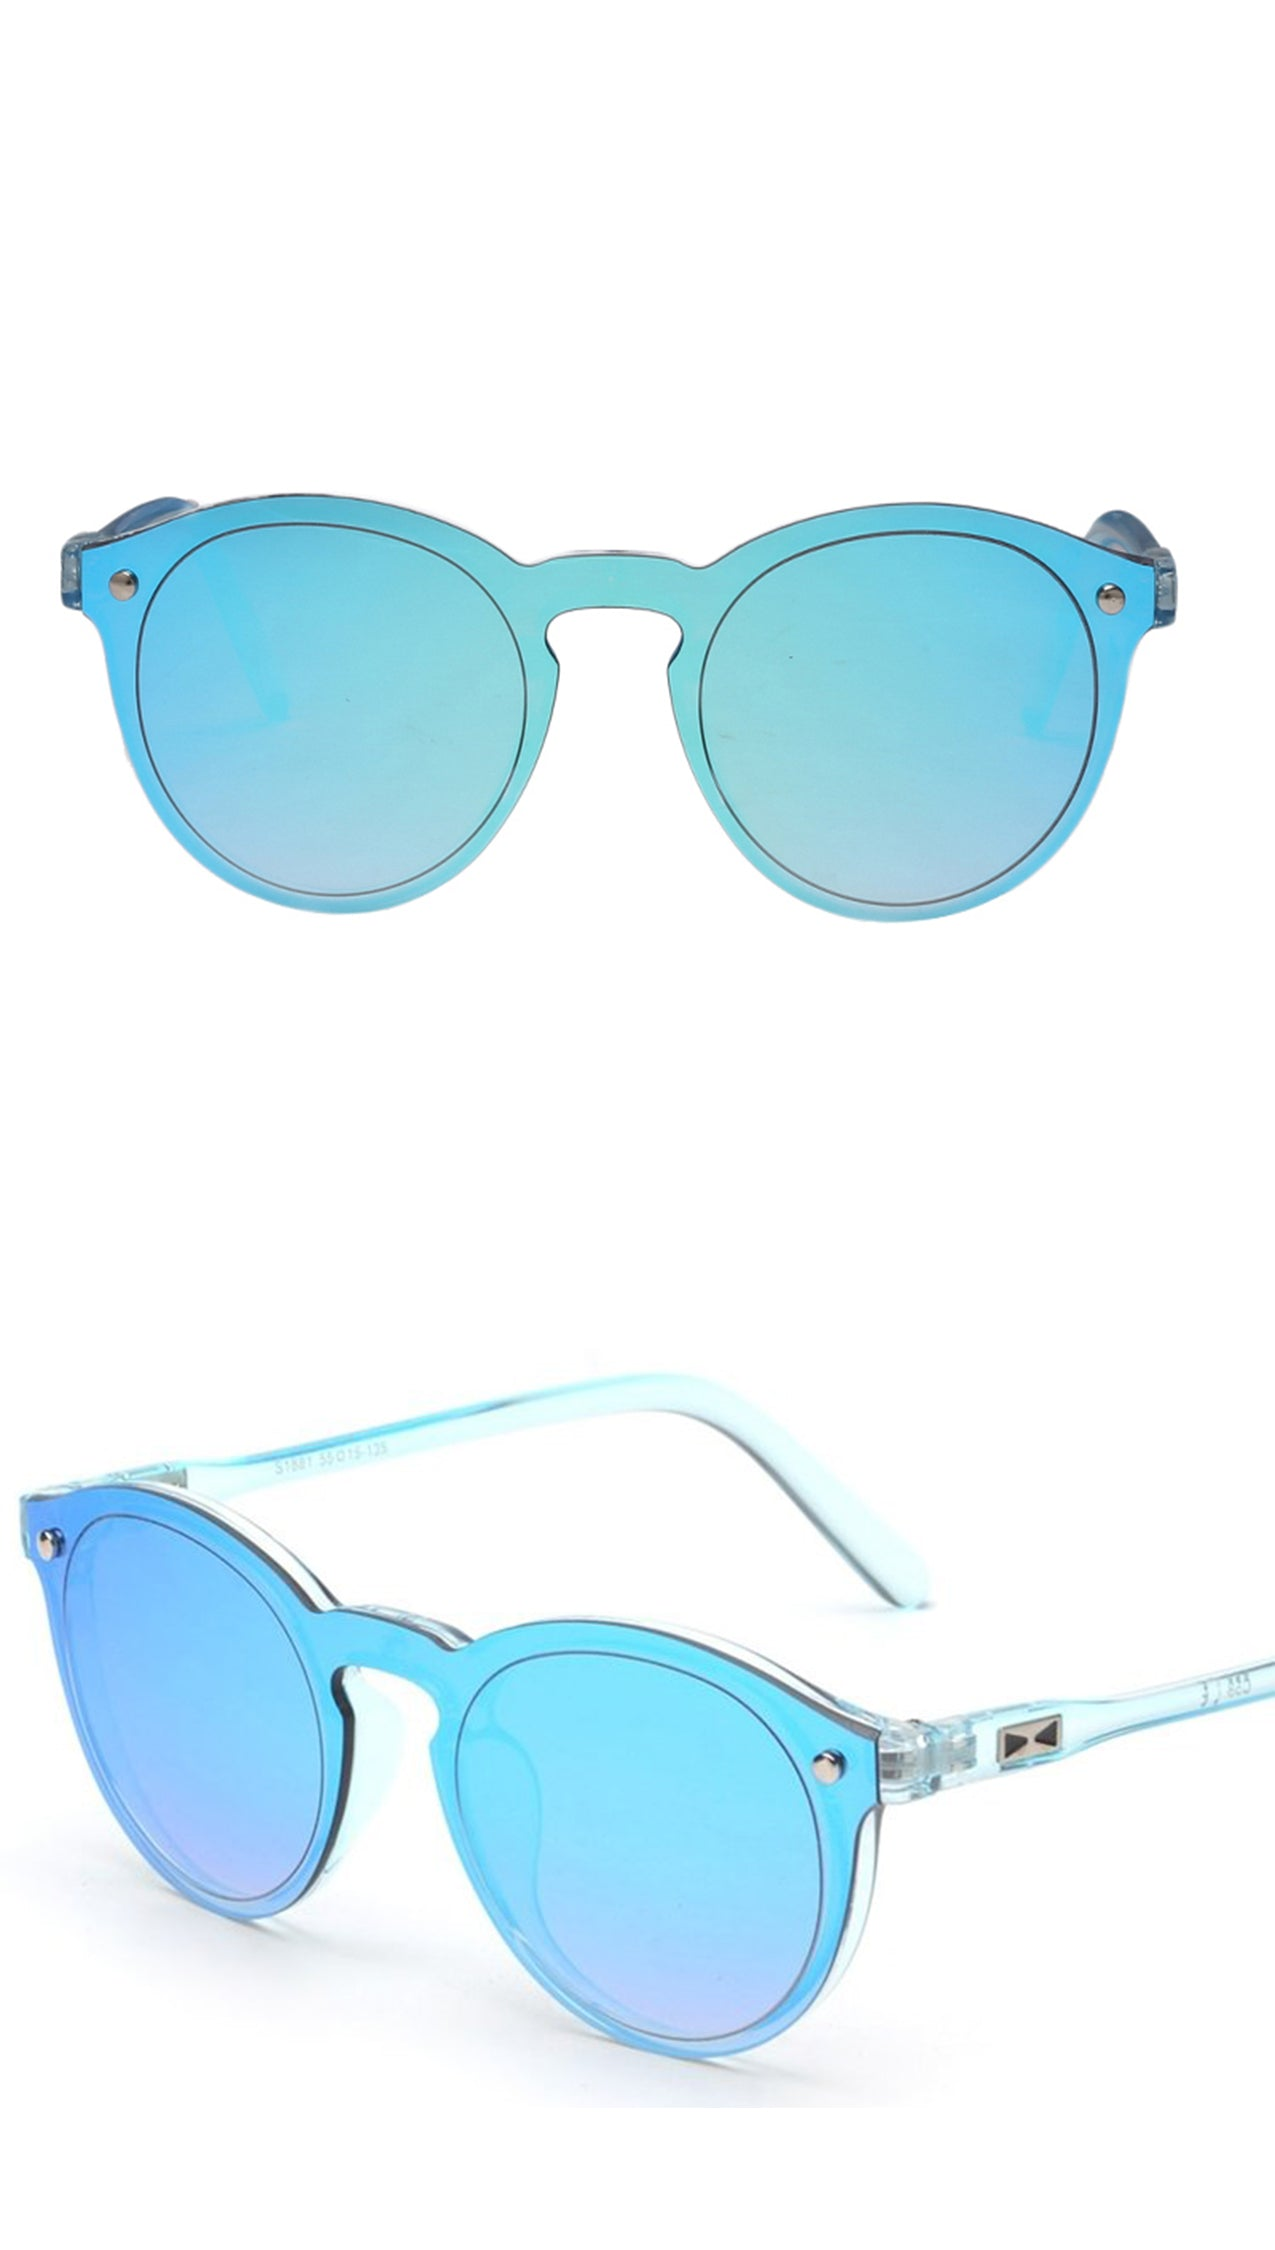 Fashion Shades Mirror Reflective Single Lens SUnglasses Blue